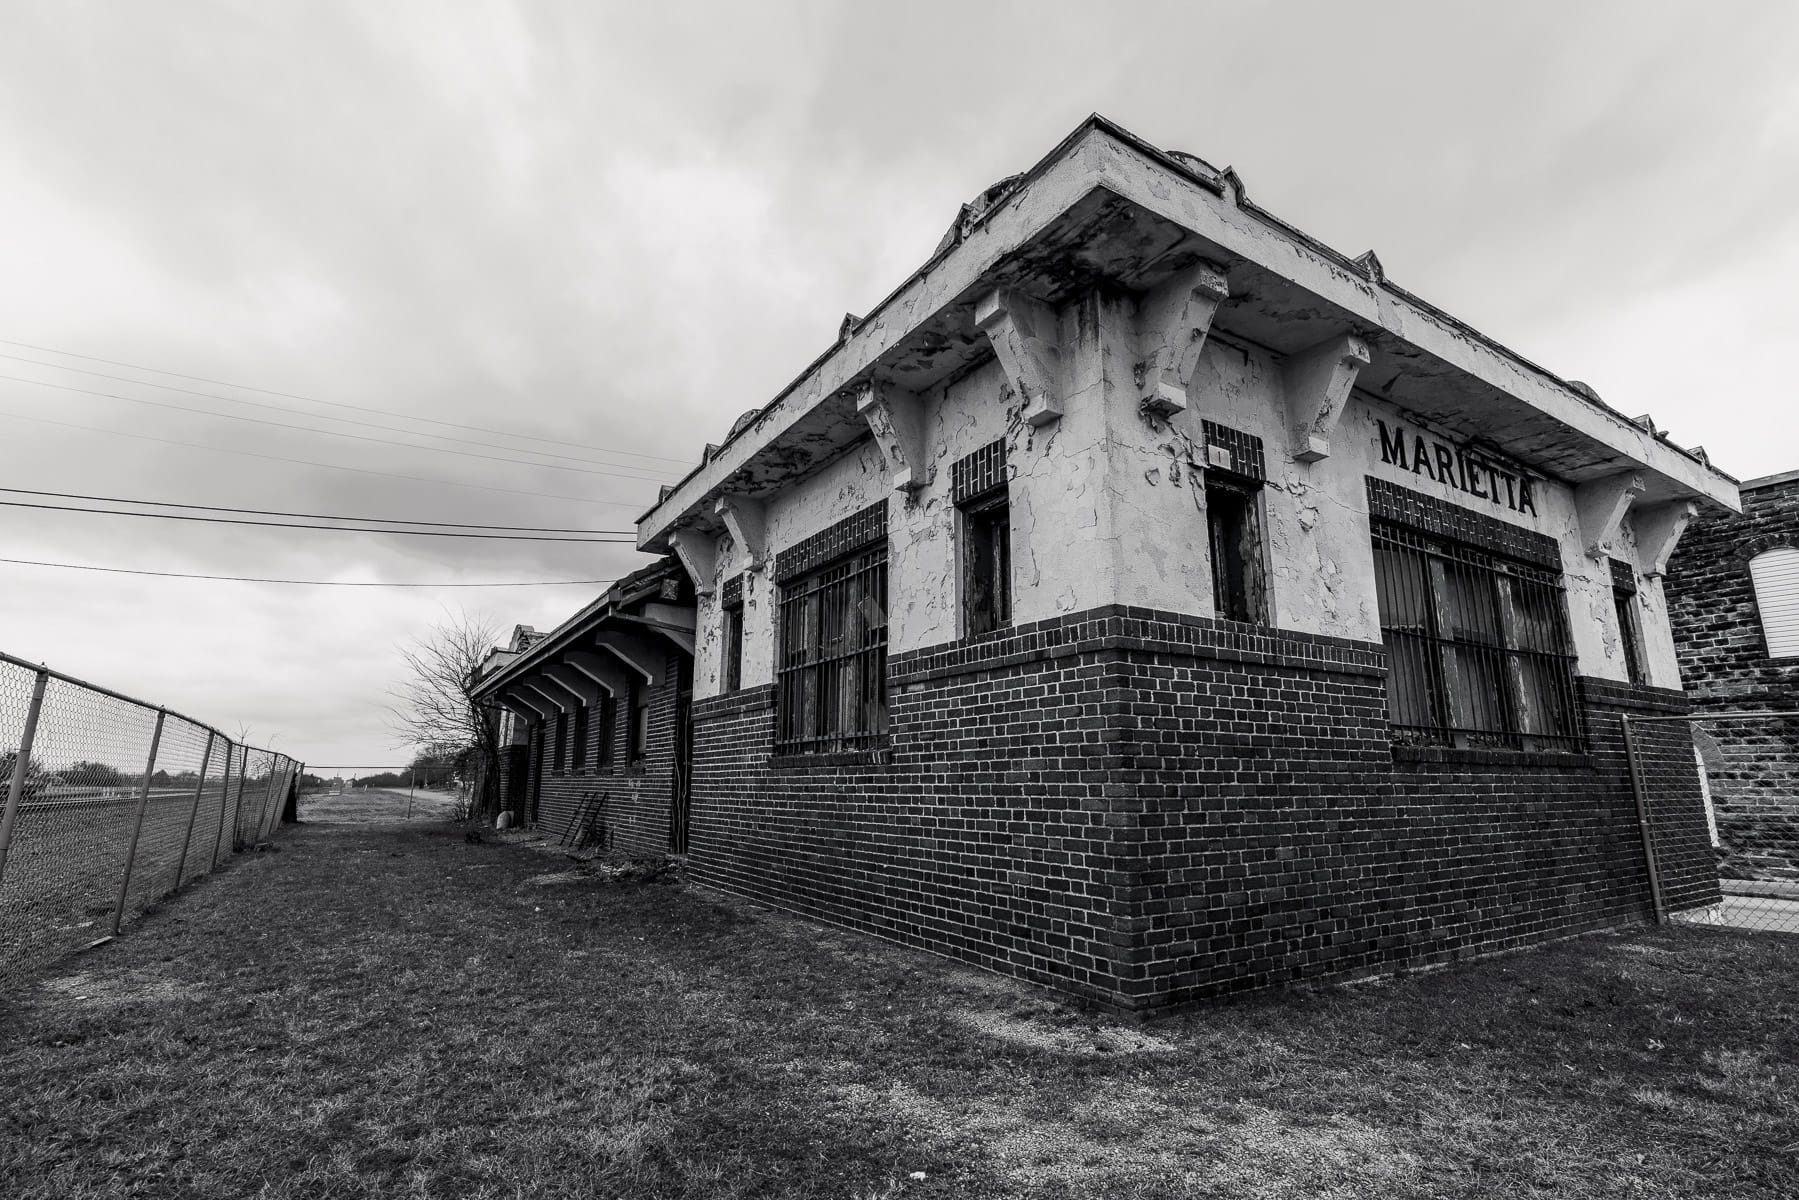 The abandoned railroad depot at Marietta, Oklahoma.